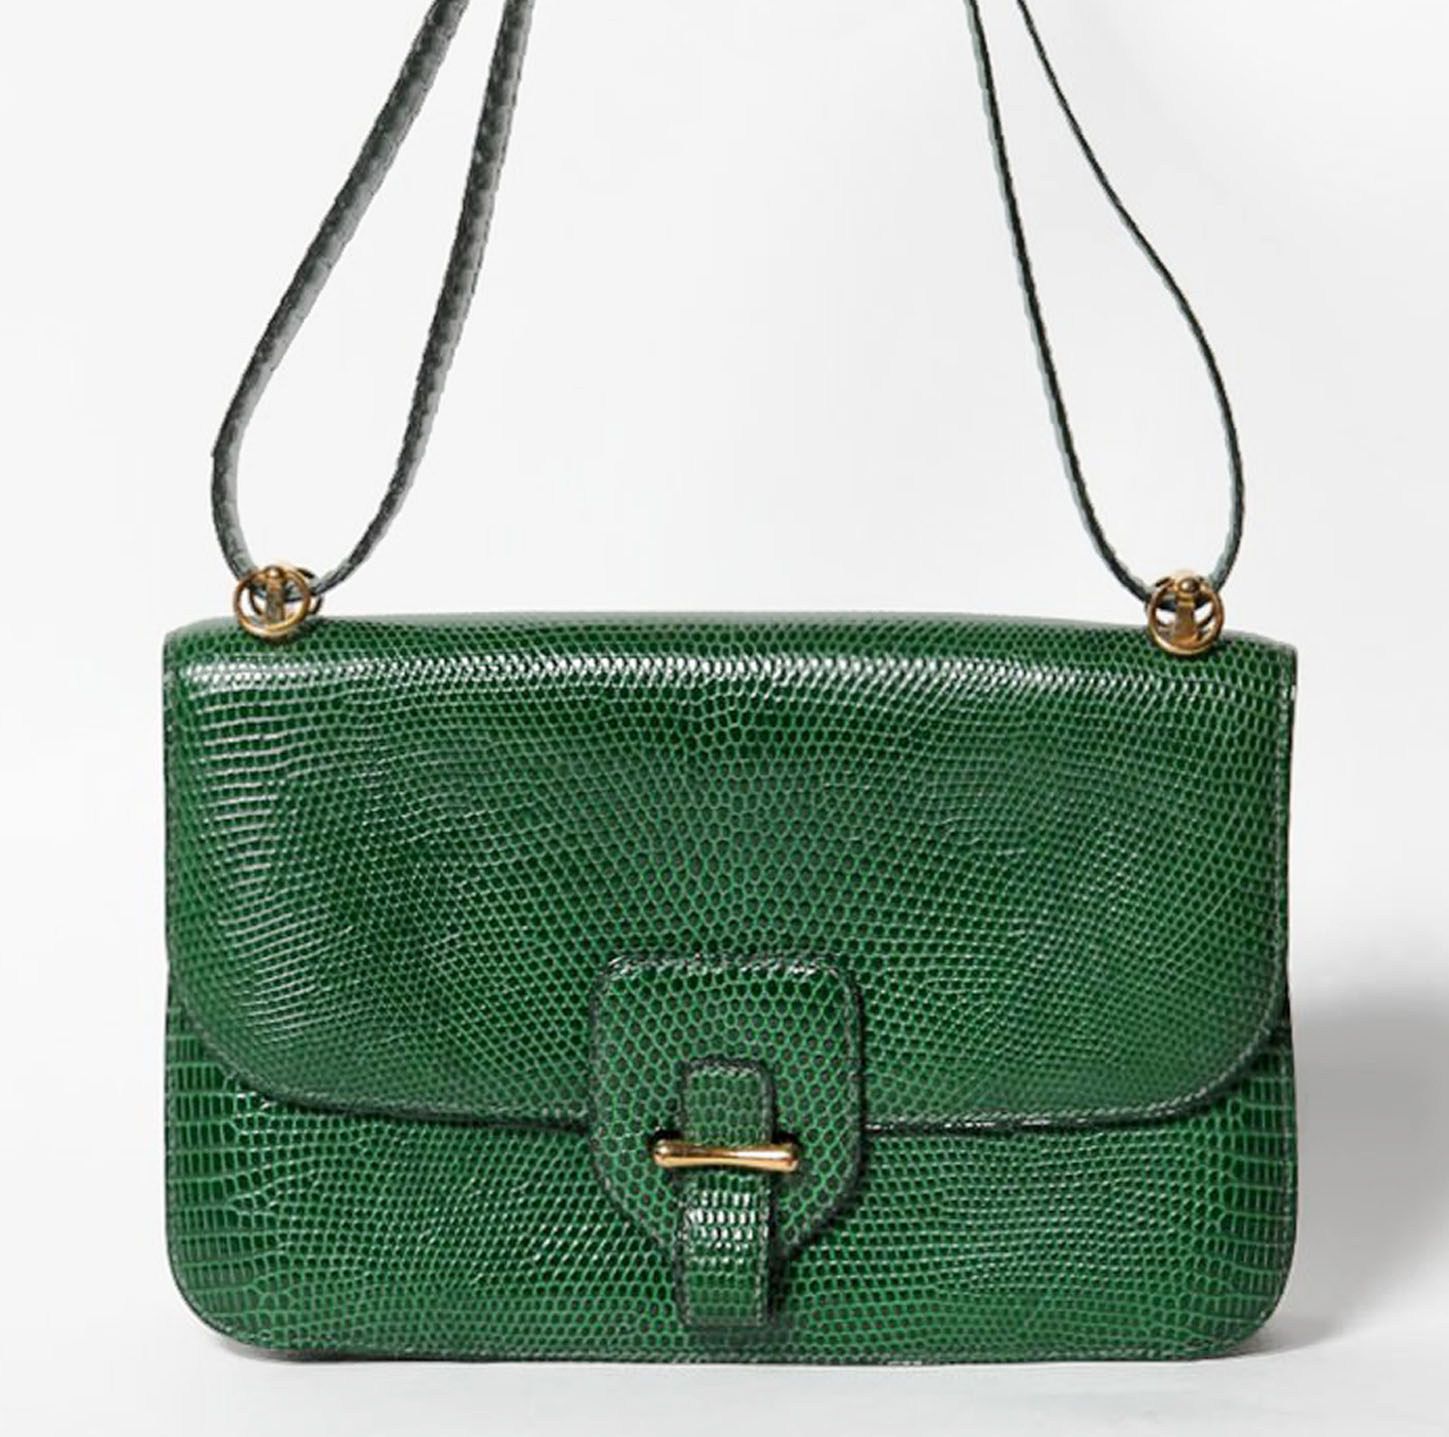 EMERALD LIZARD HERMES SHOULDER BAG